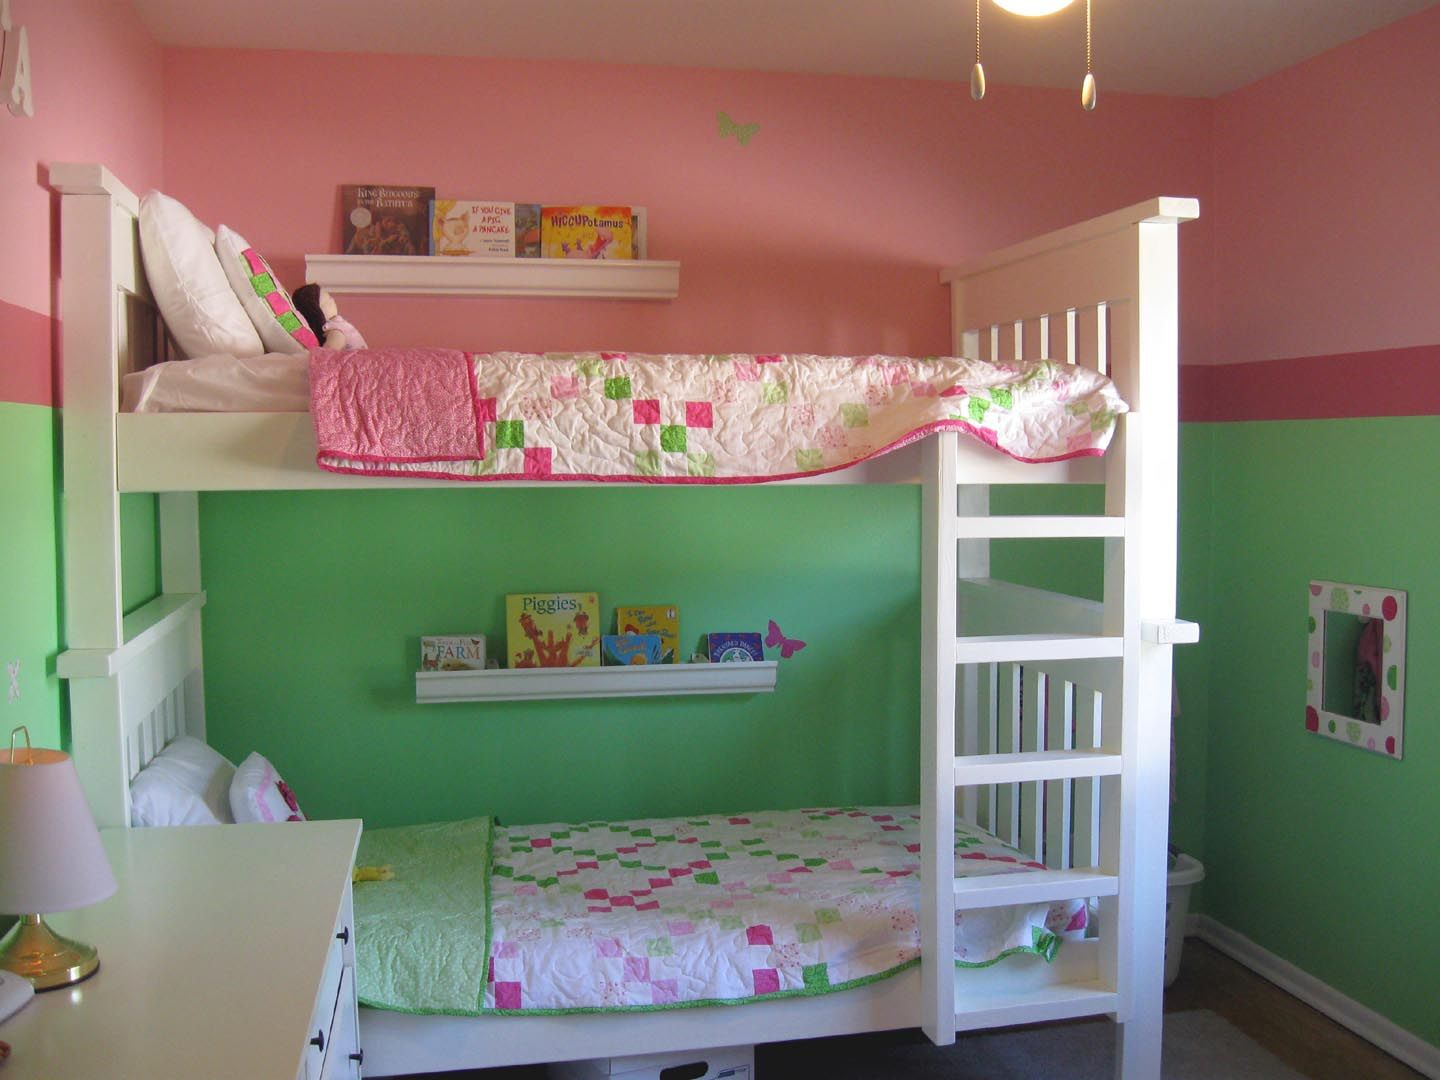 Simple Bunk Bed Plans (Twin over Full) Σπίτια και Ιδέες